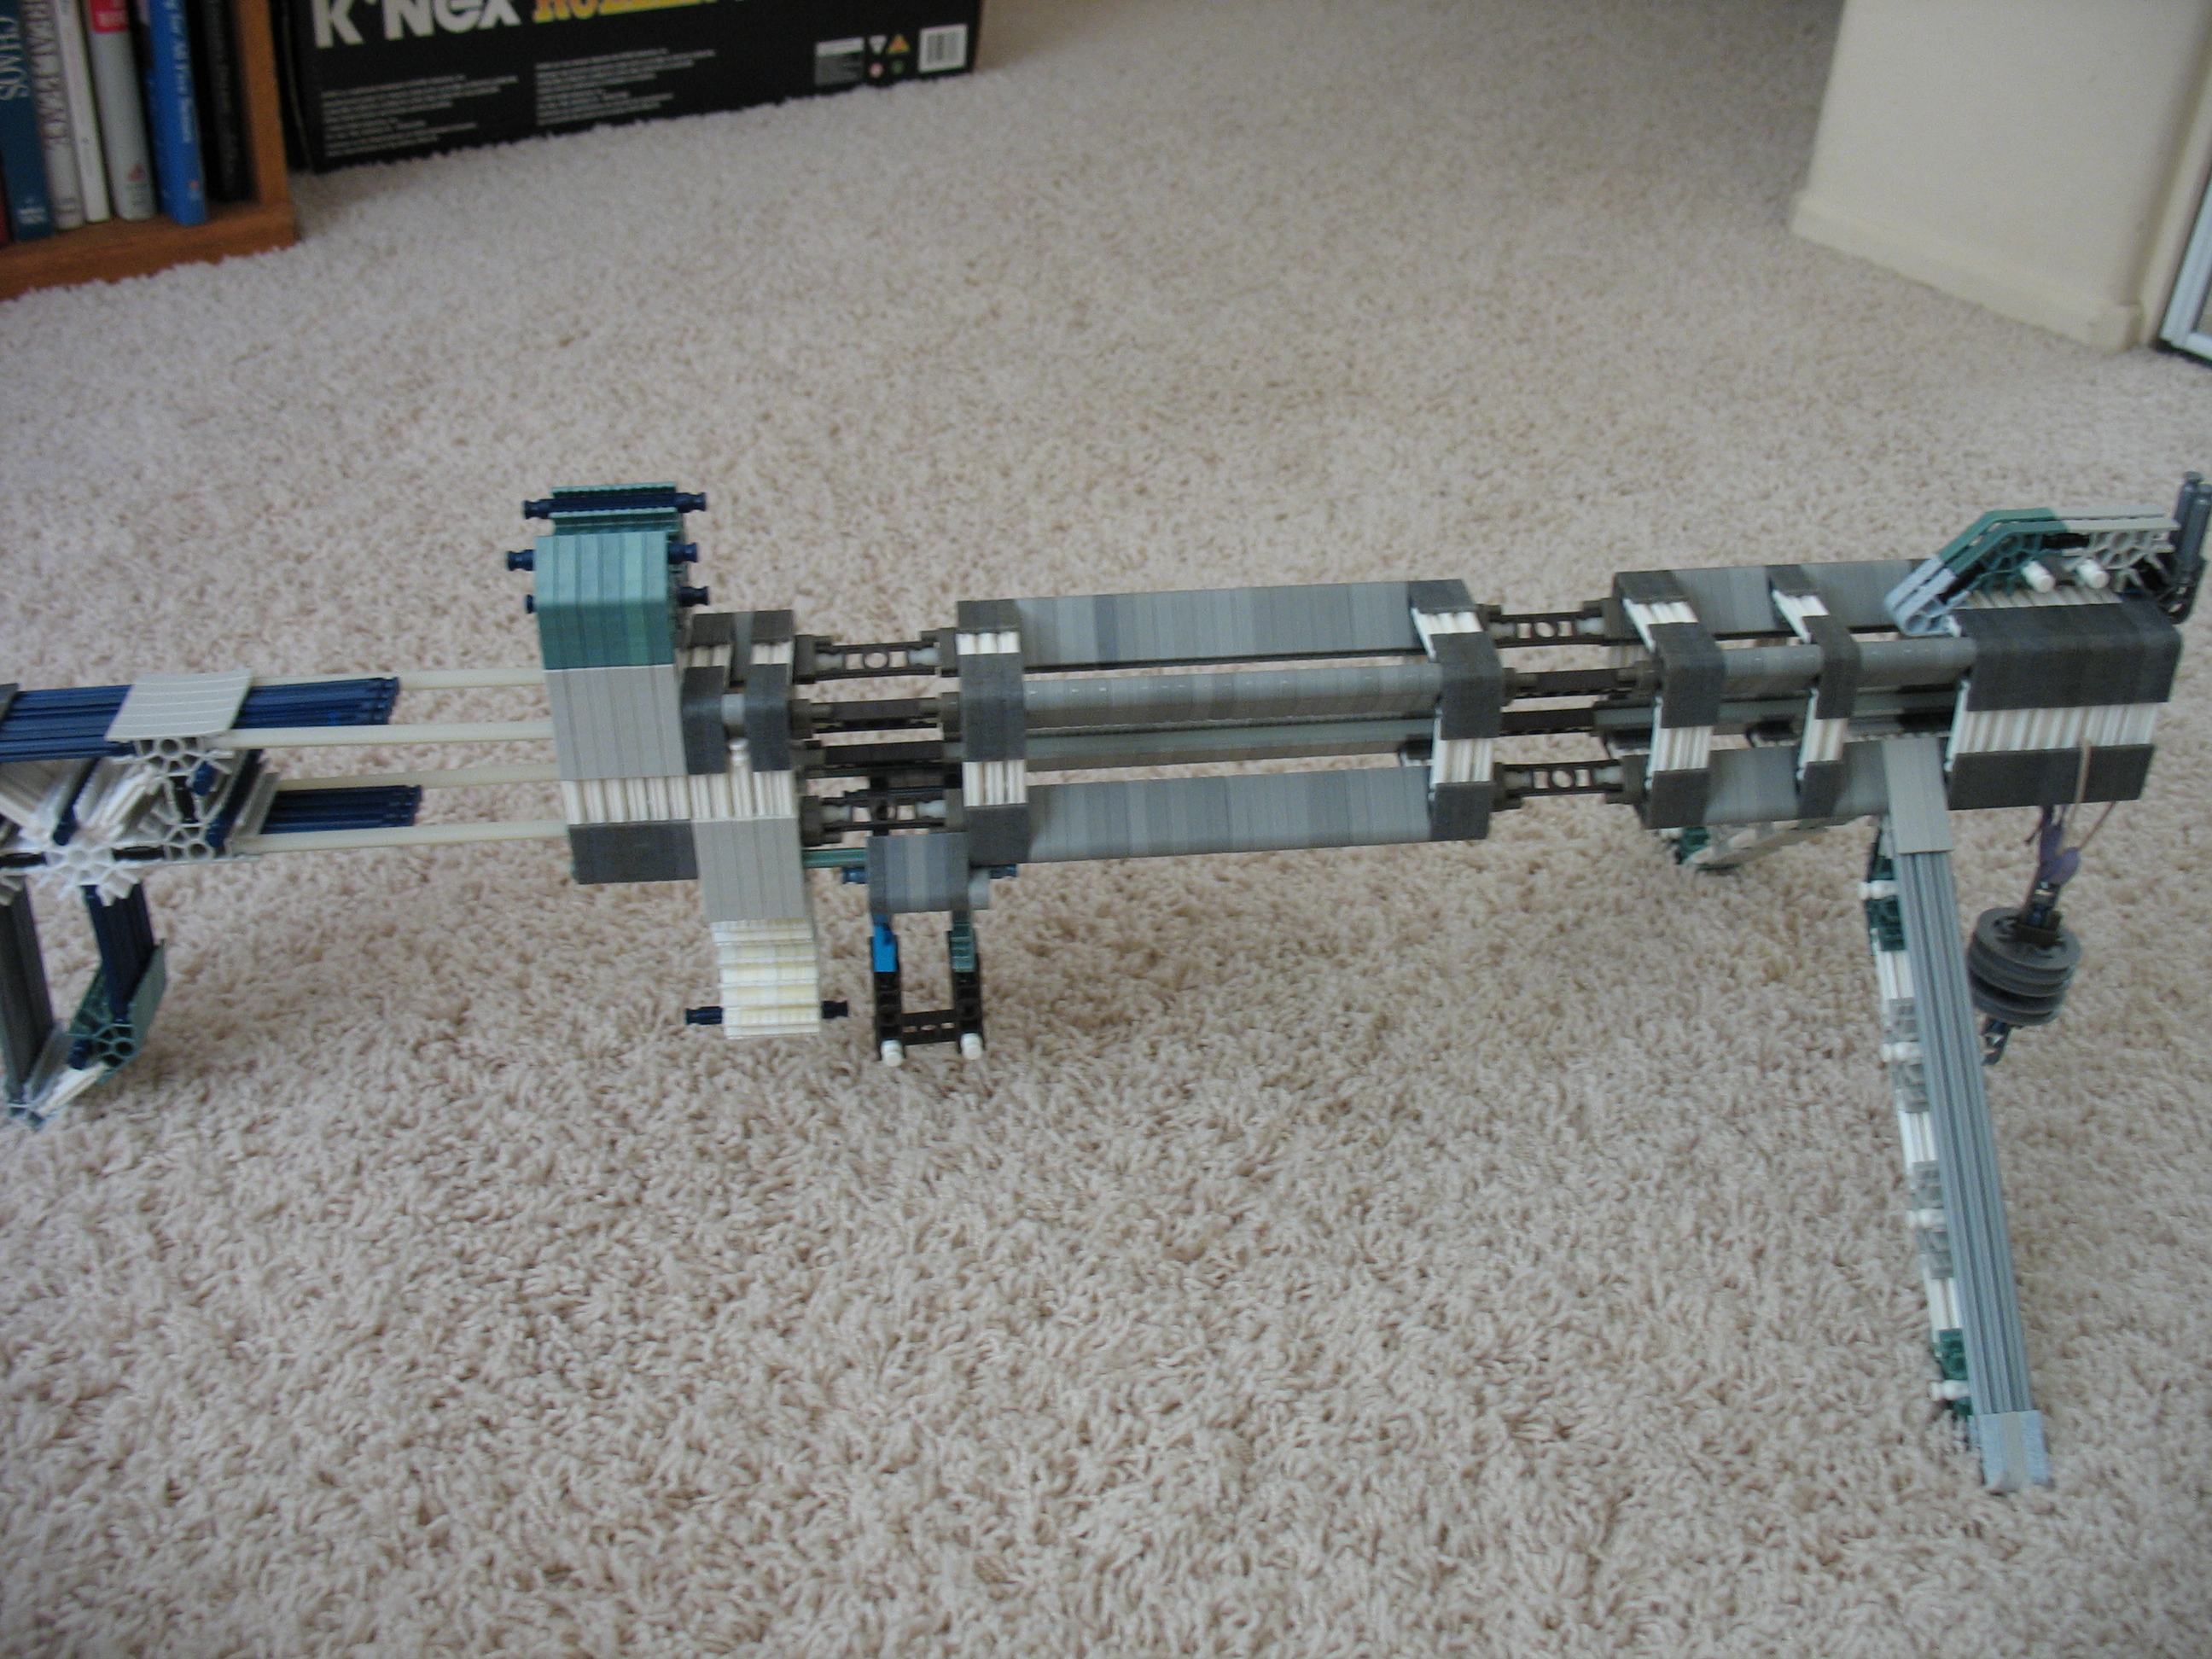 40mm K'nex Rifle